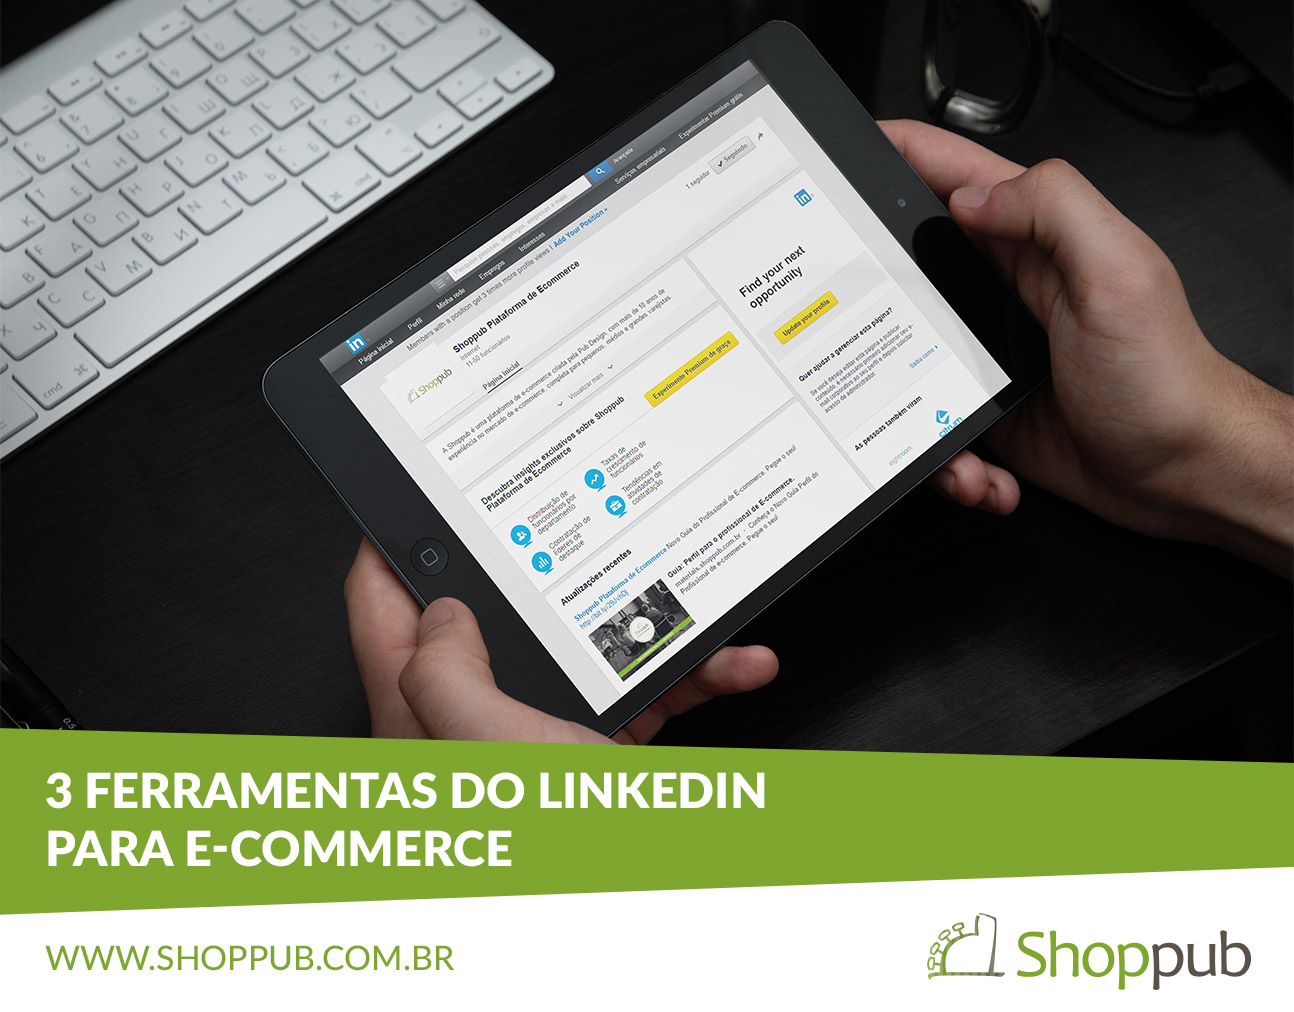 3 ferramentas do LinkedIn para e-commerce